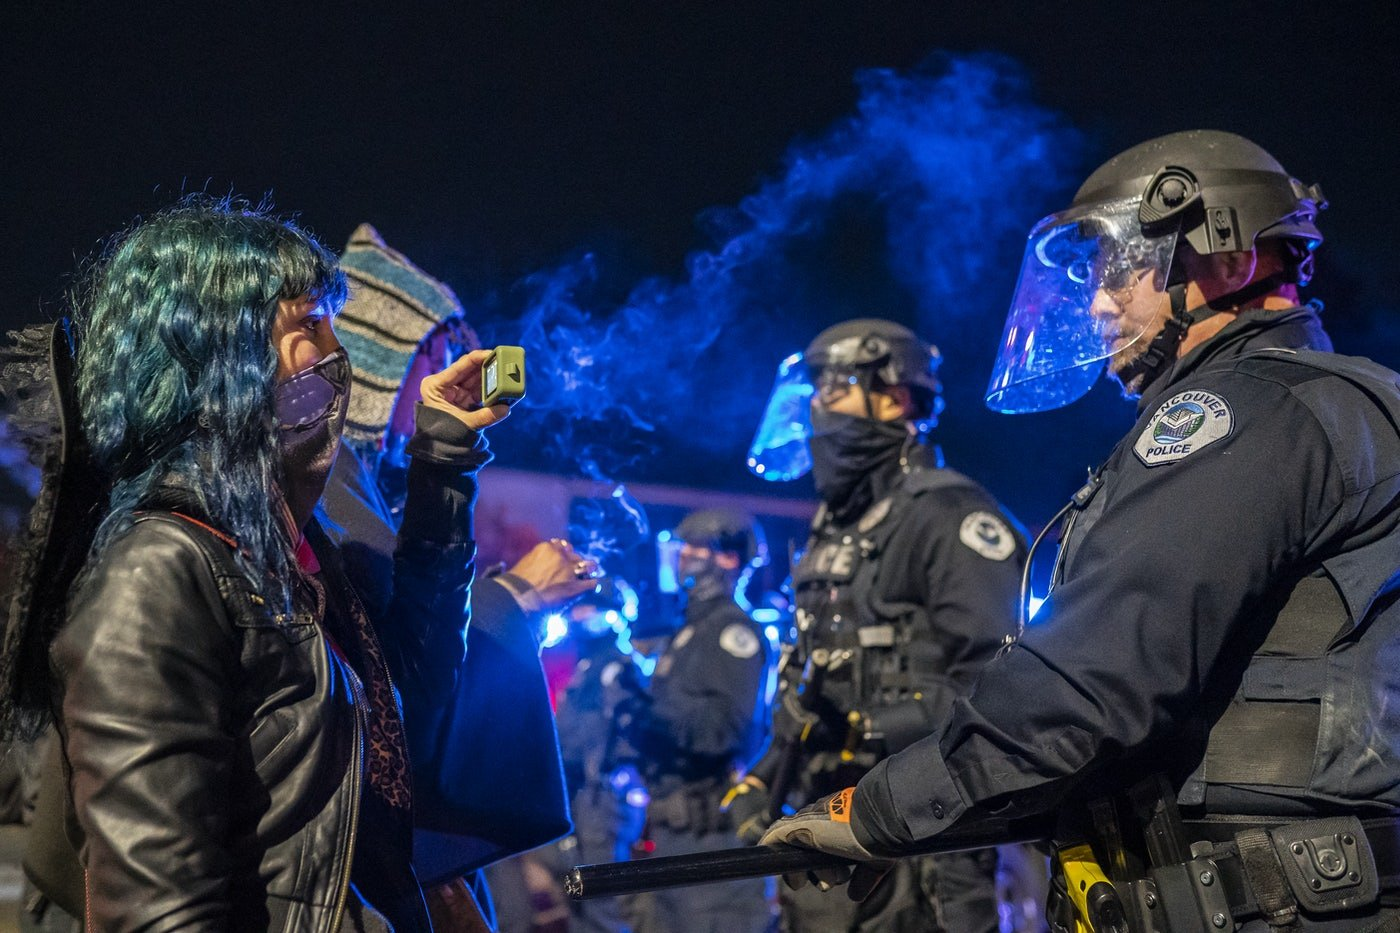 A Black Lives Matter protester films the police at an encounter in Washington state.